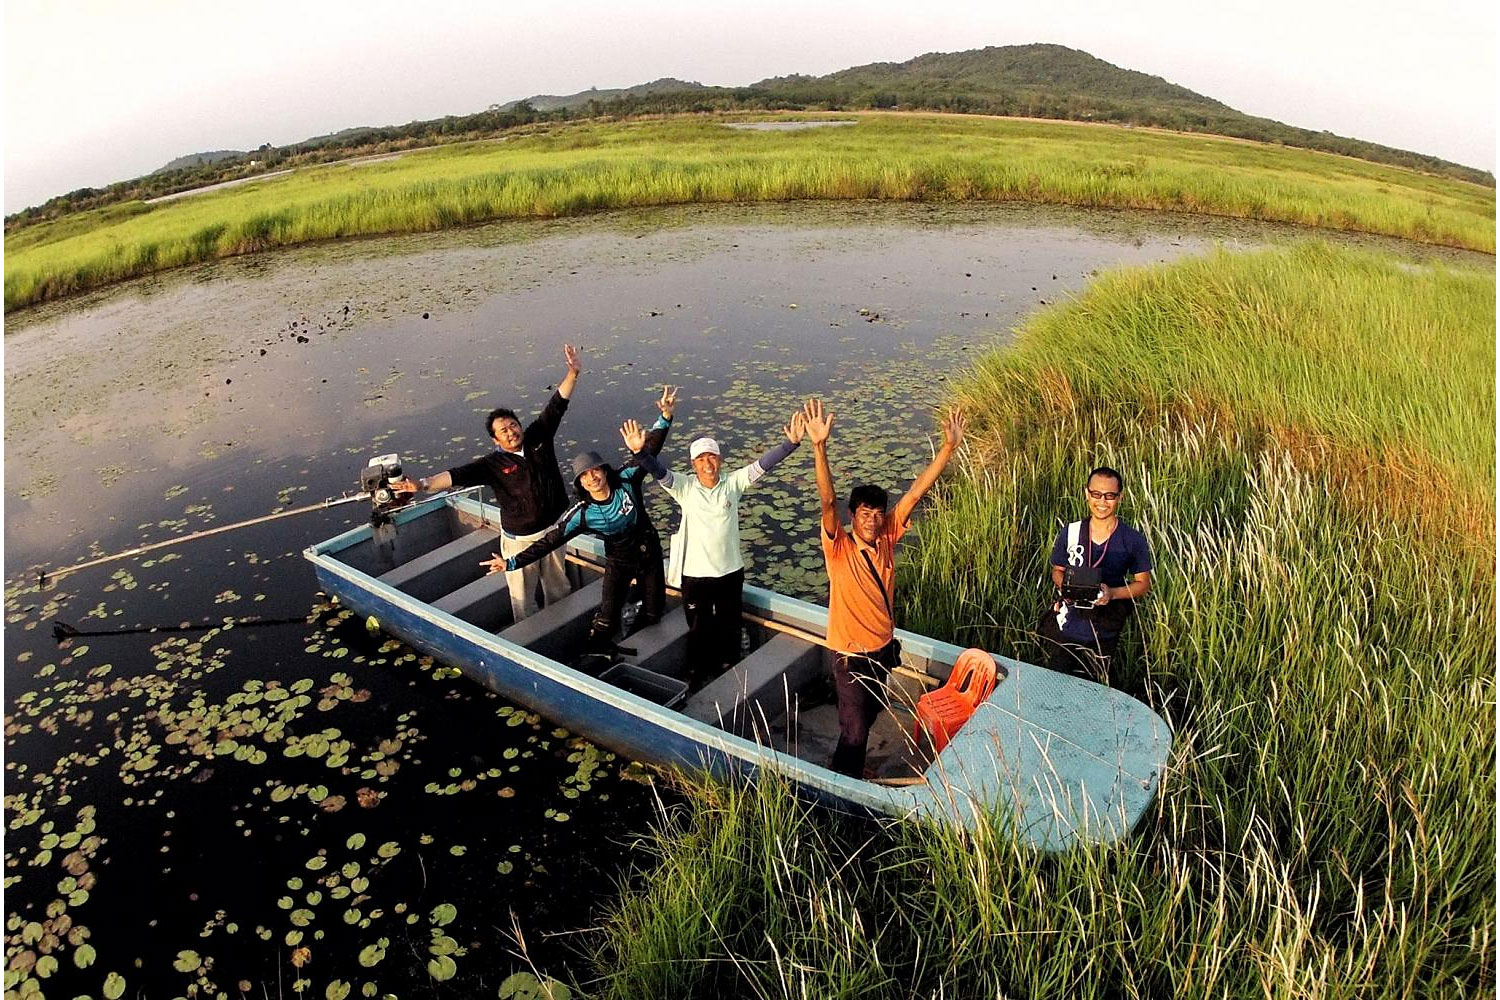 Part of the garden includes a wetland it hopes to preserve.(Photo by Pattarapong Chatpattarasill)